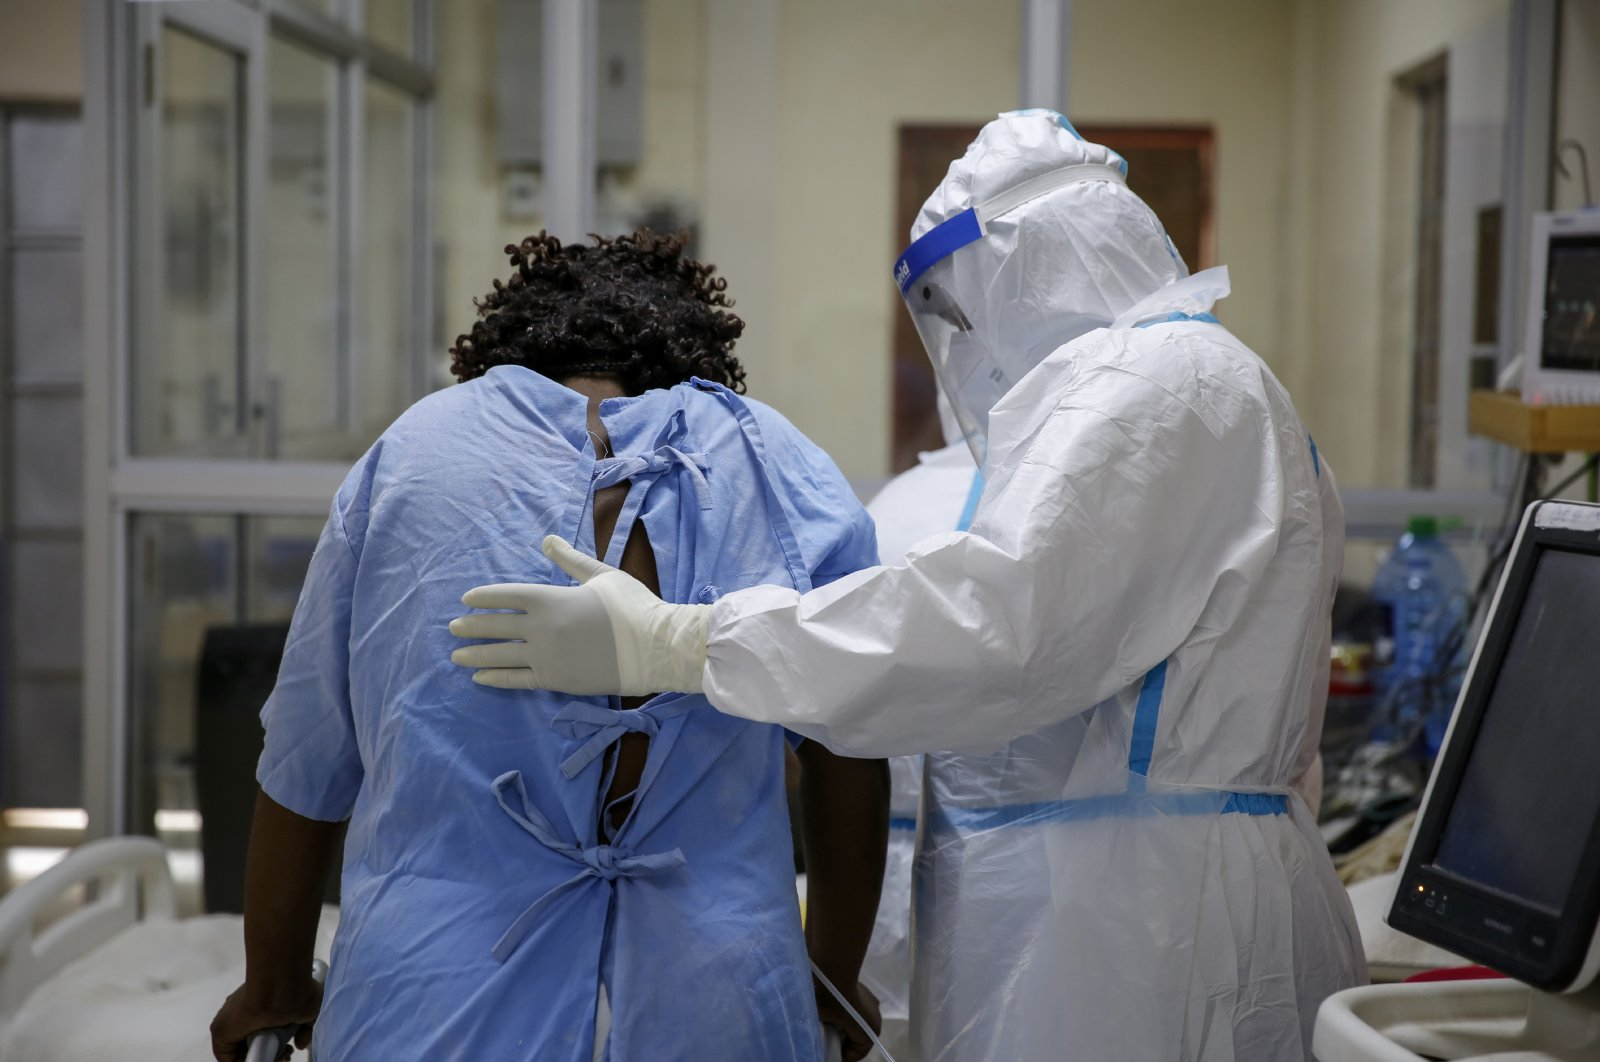 A medical worker attends to a coronavirus patient in the intensive care unit of an isolation and treatment center for those with COVID-19 in Machakos, south of the capital Nairobi, in Kenya, Nov. 3, 2020. (AP Photo)